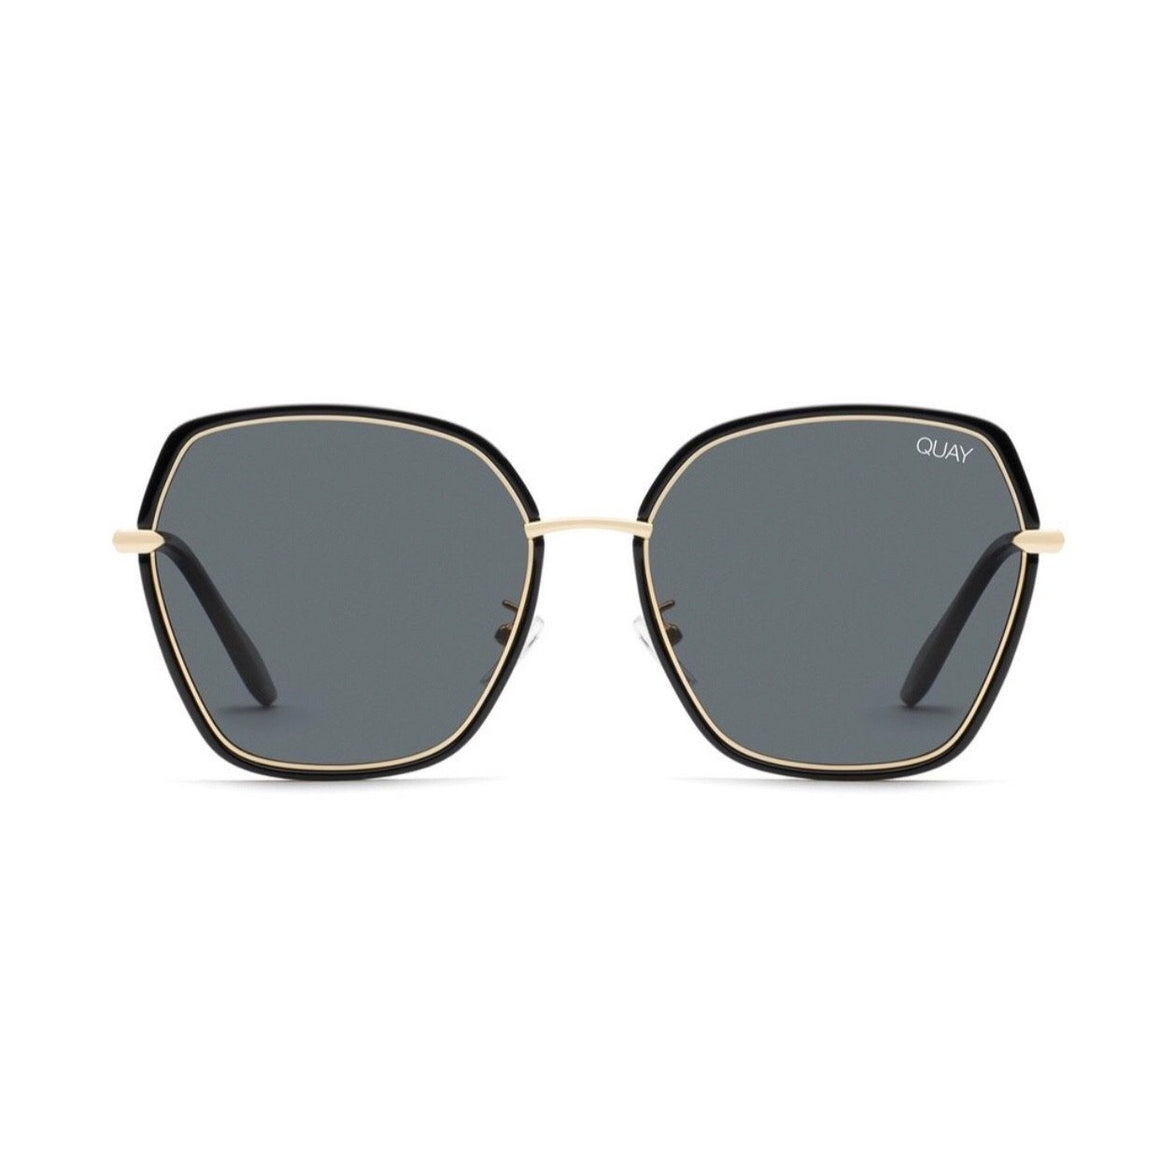 Quay - Verve Sunglasses - Black / Smoke Sunglasses Quay